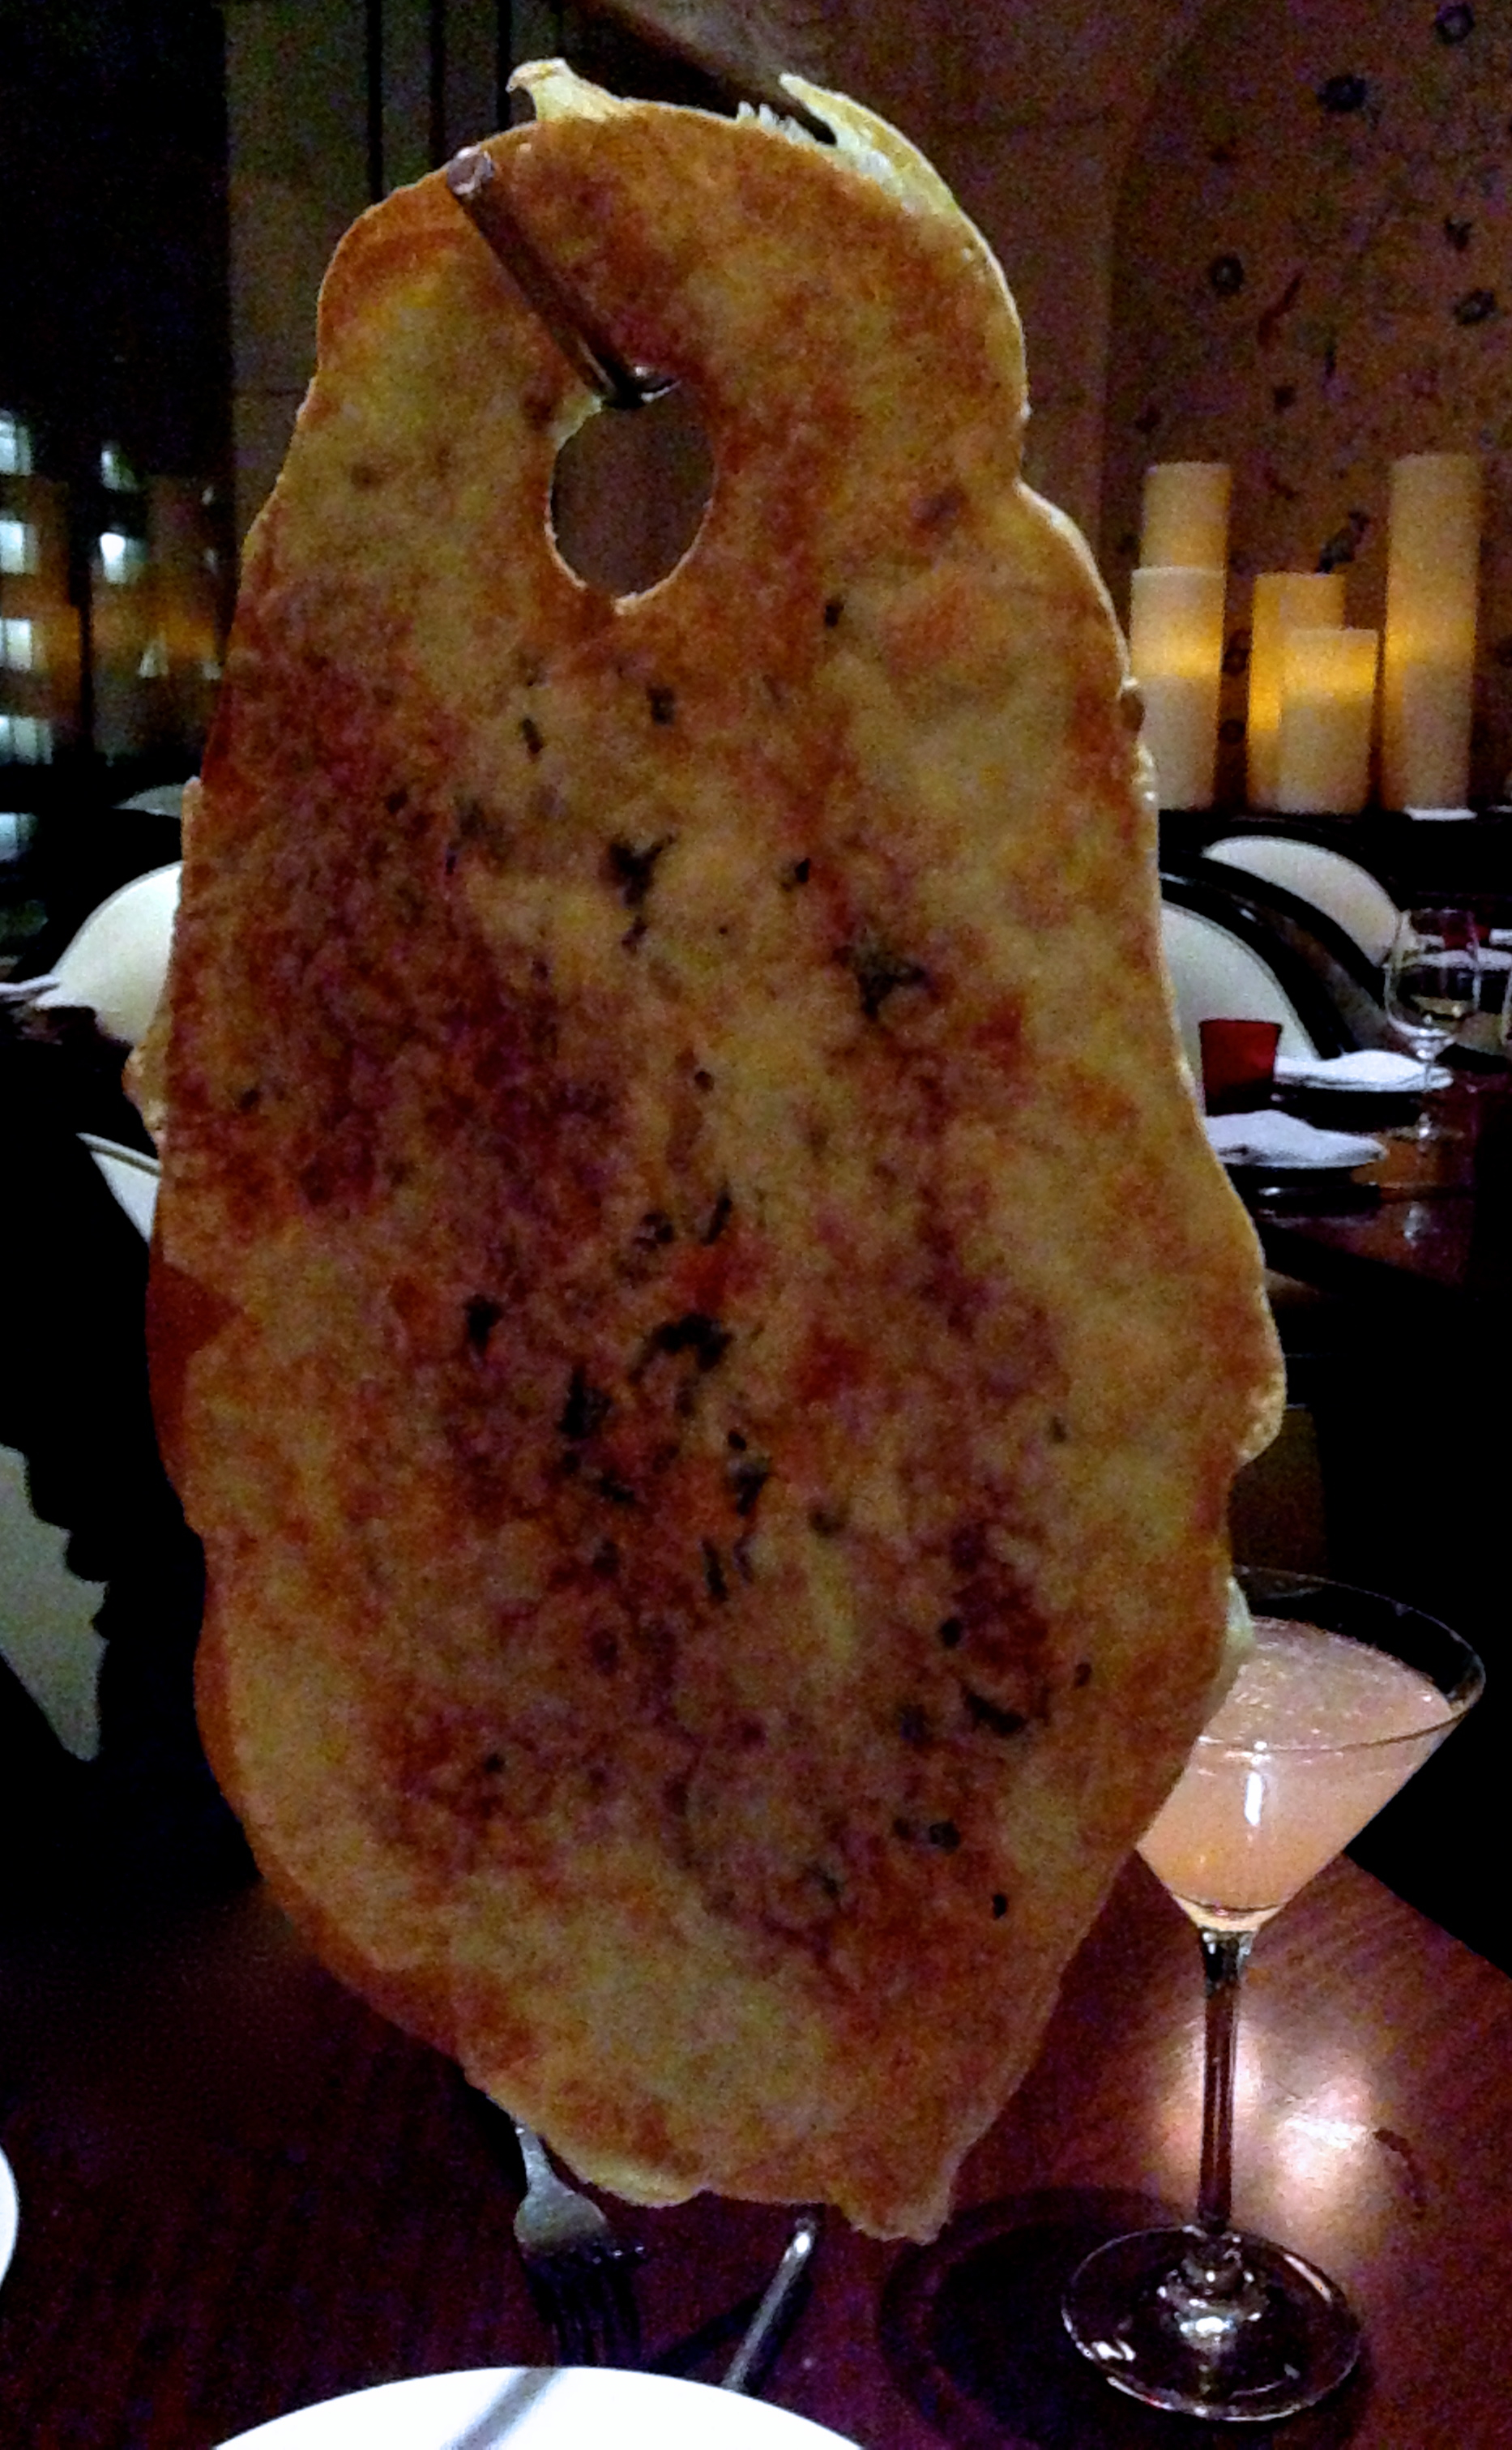 Figure 3. Cheese lavosh (or lavash)